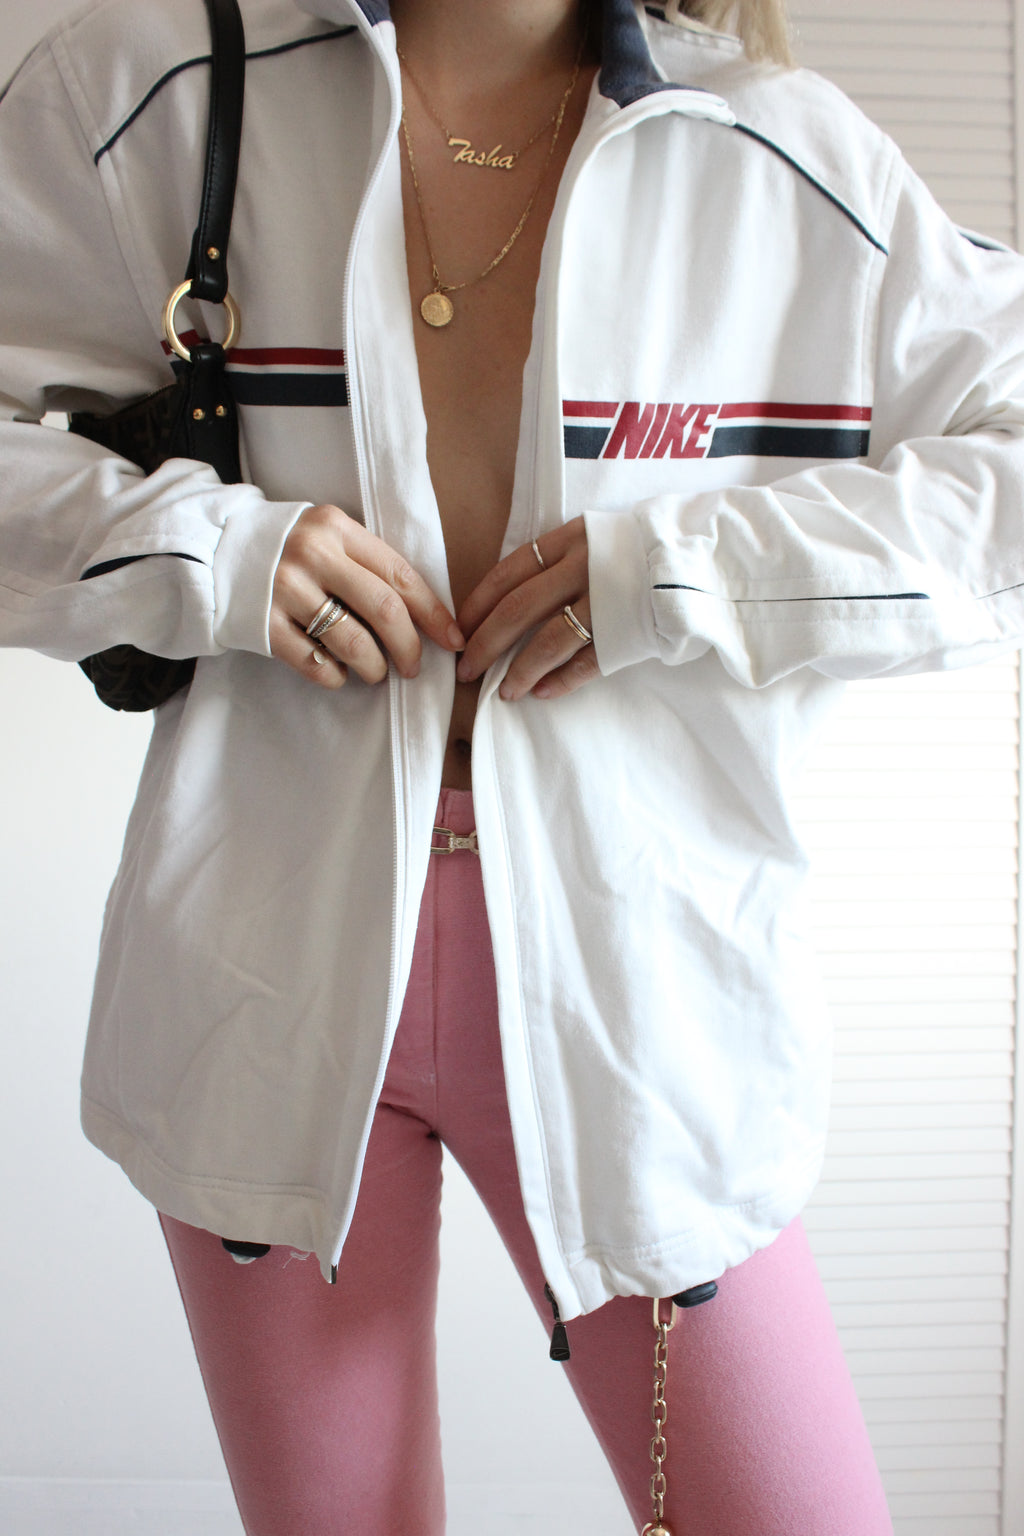 Vintage Y2k 90s White Cotton Nike Zip Up Sweatshirt